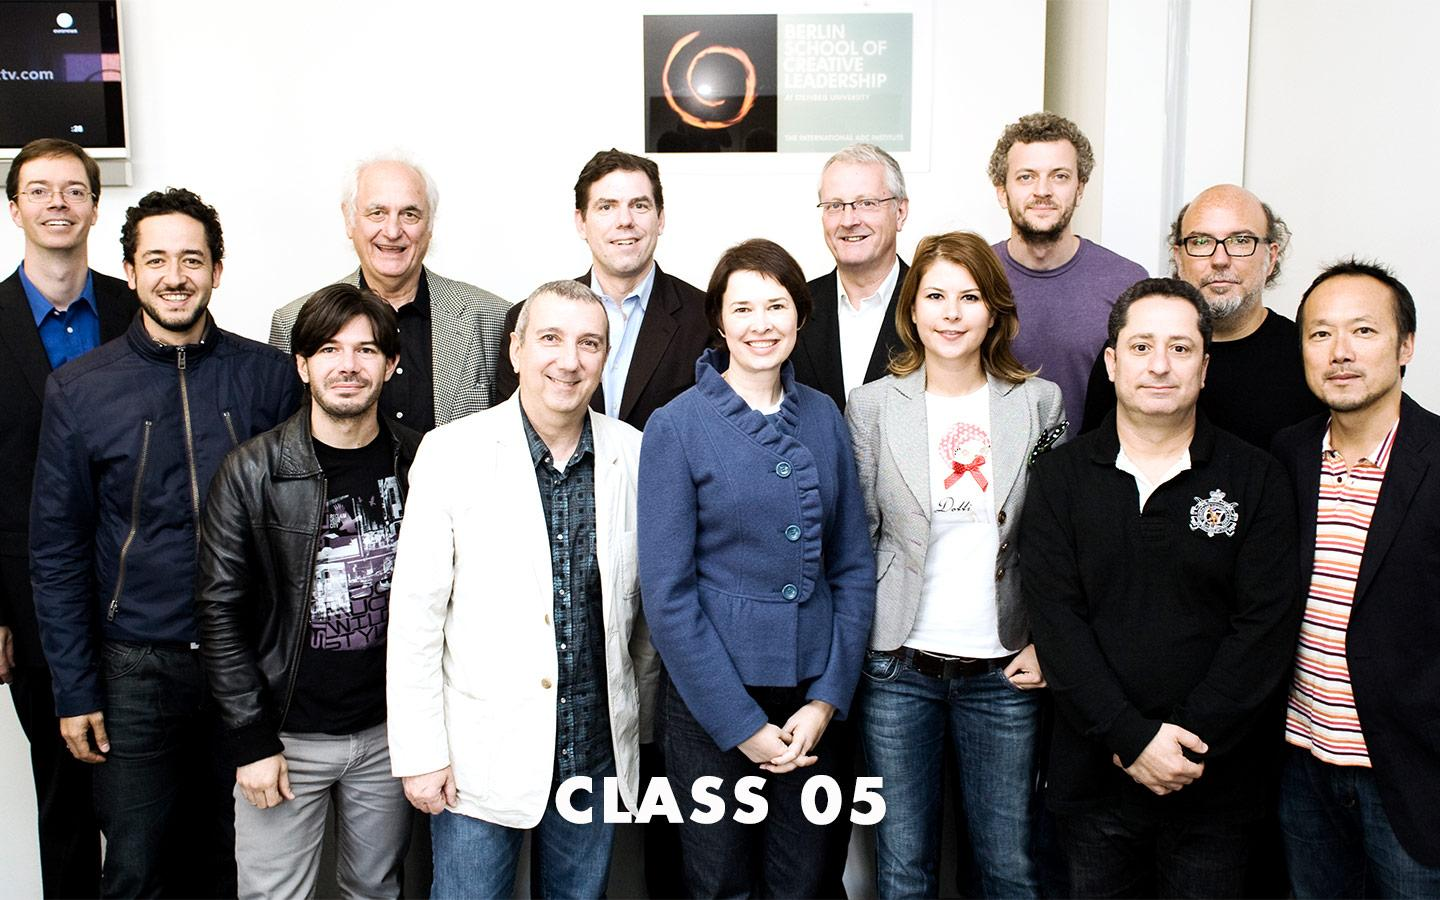 Class Picture EMBA Class 05